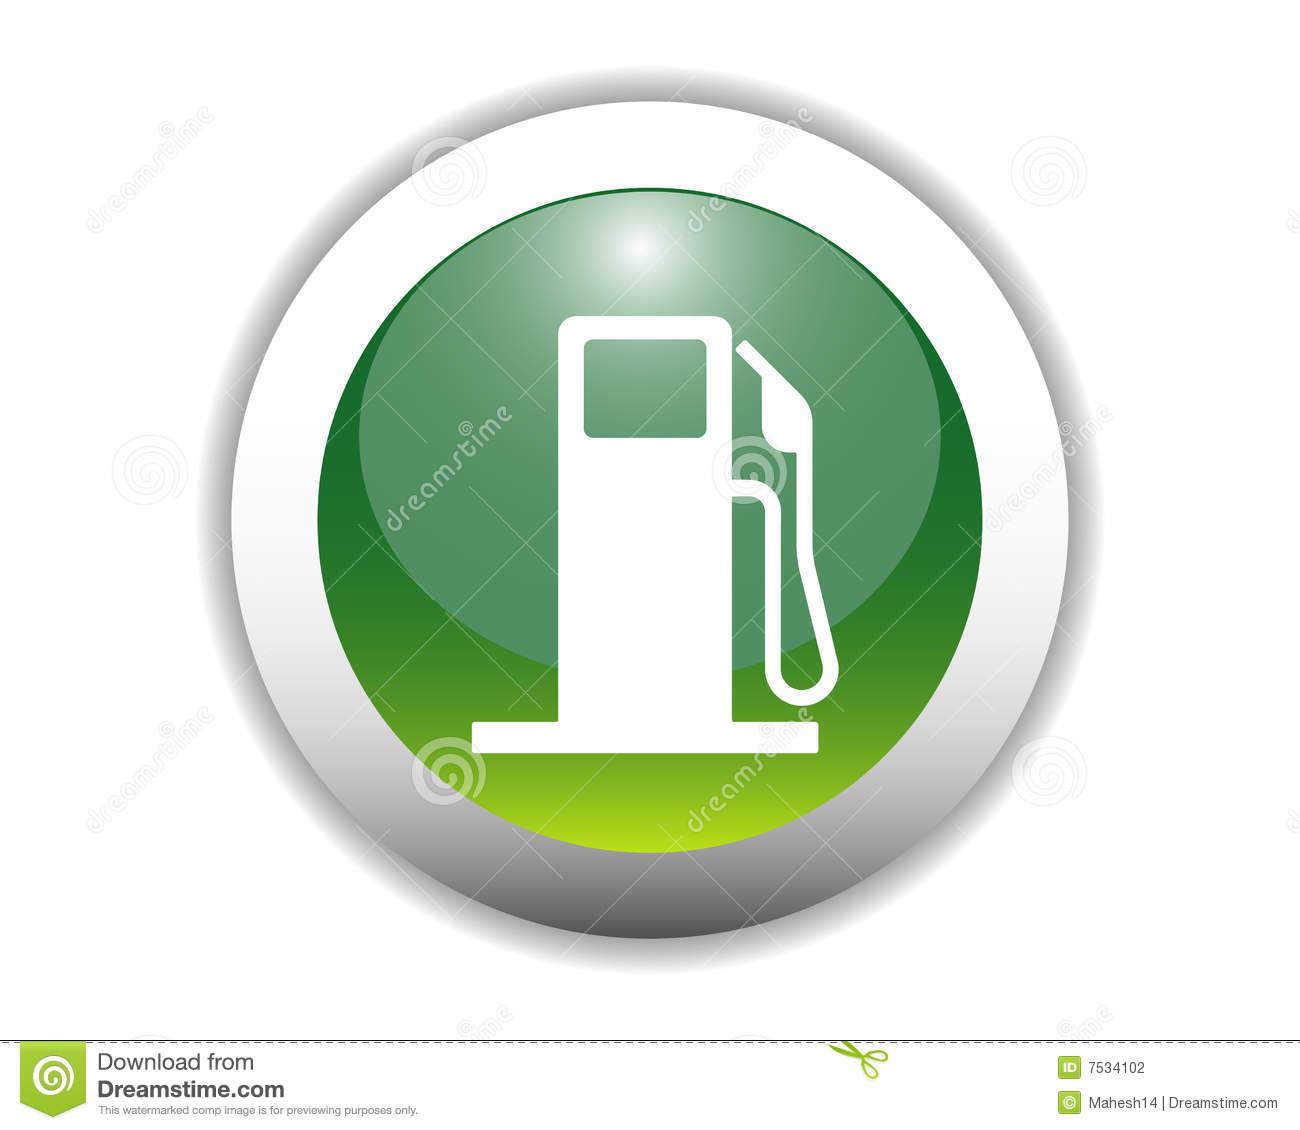 6 7 Diesel Fuel Filters Glossy Fuel Icon Button Stock Vector Illustration Of